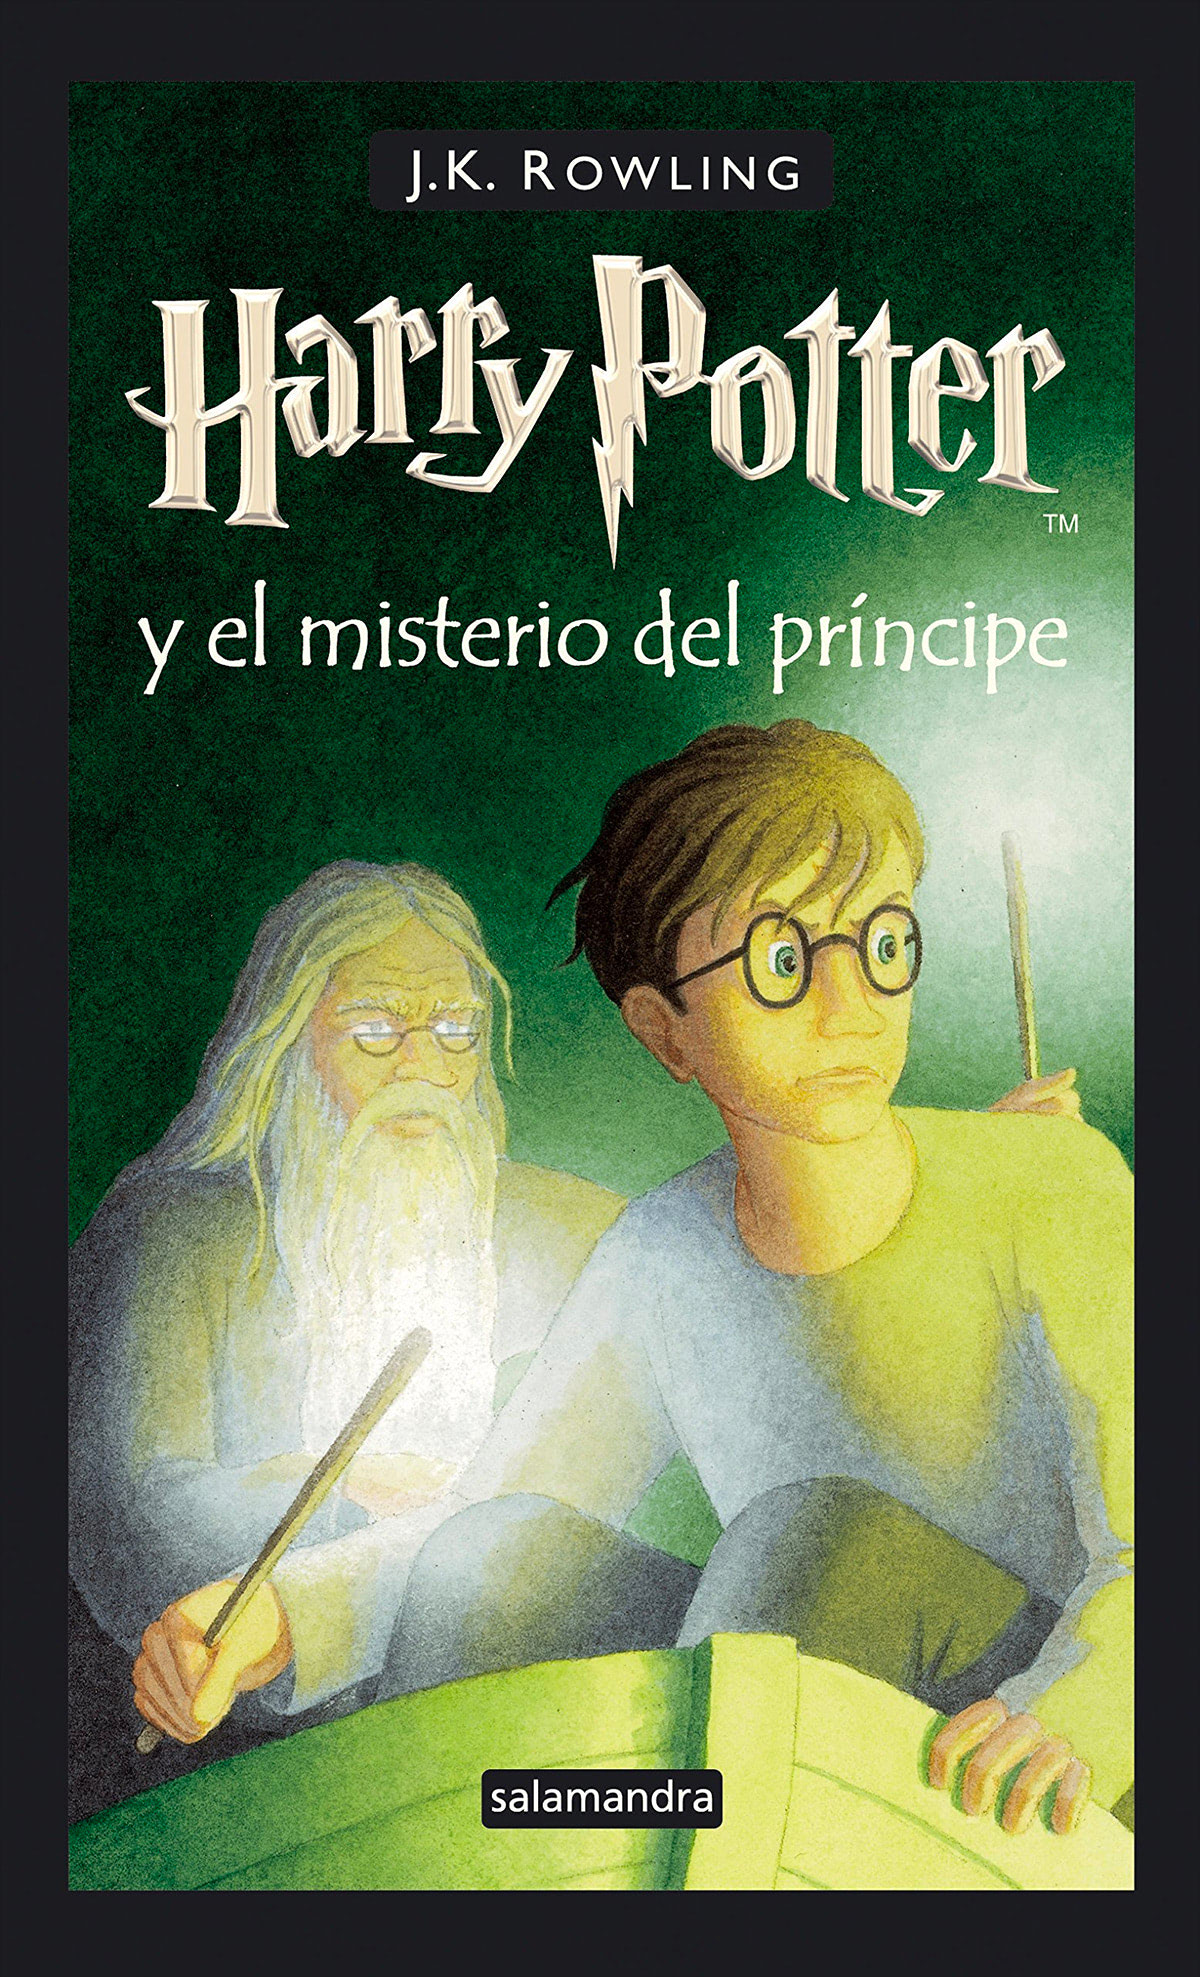 'Half-Blood Prince' Spanish edition